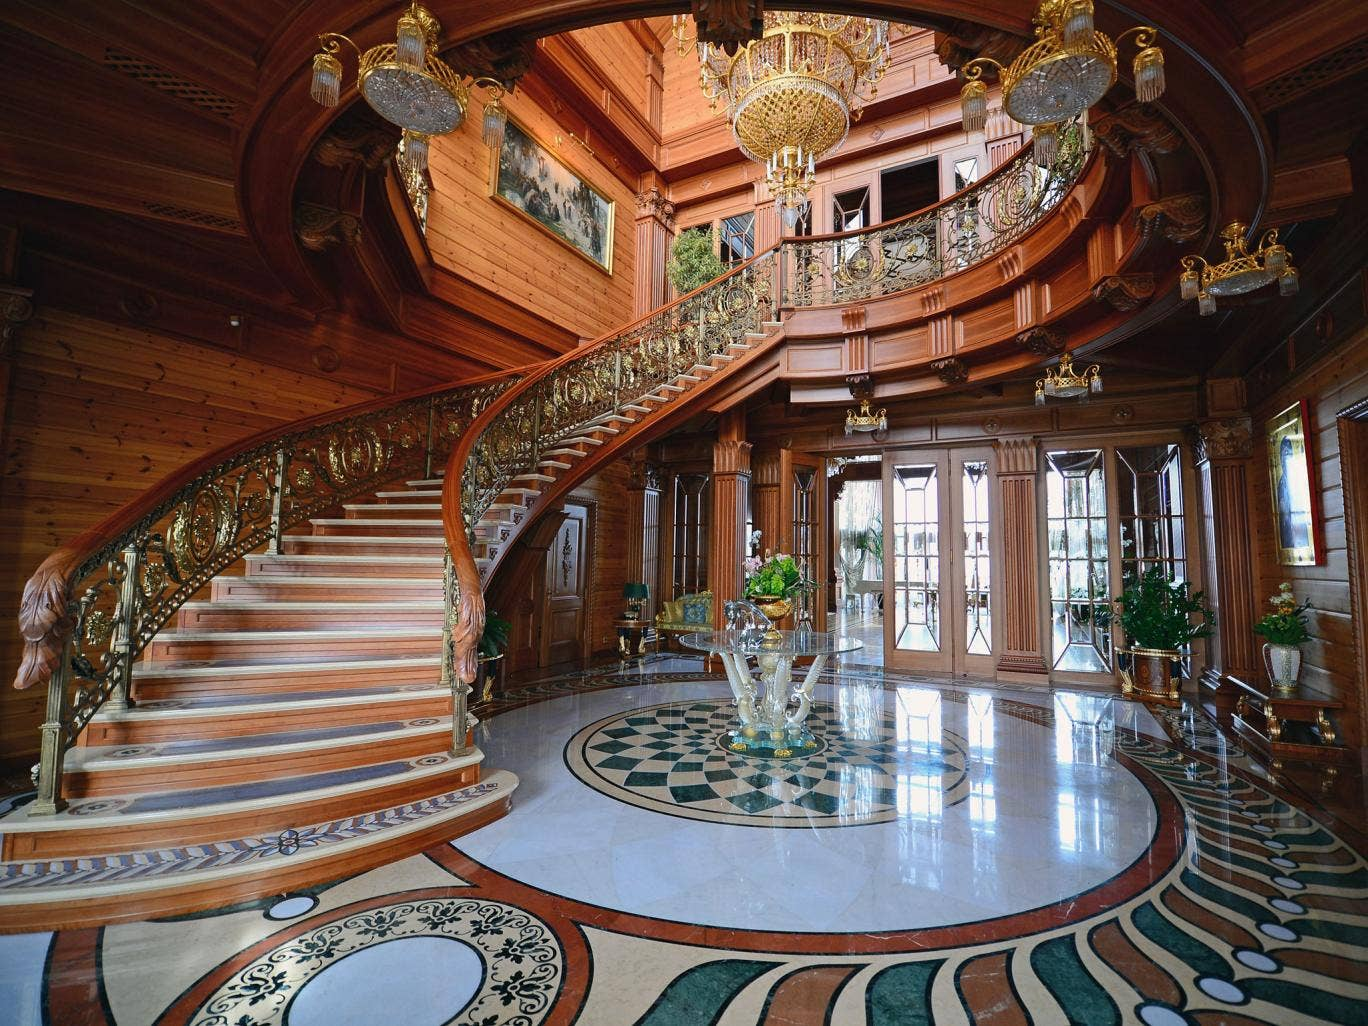 A staircase winds up in a view of a room inside President Viktor Yanukovych's Mezhyhirya estate, which he abandoned as further evidence of his corrupt behaviour continues to surface from the incriminating documents found at his mansion